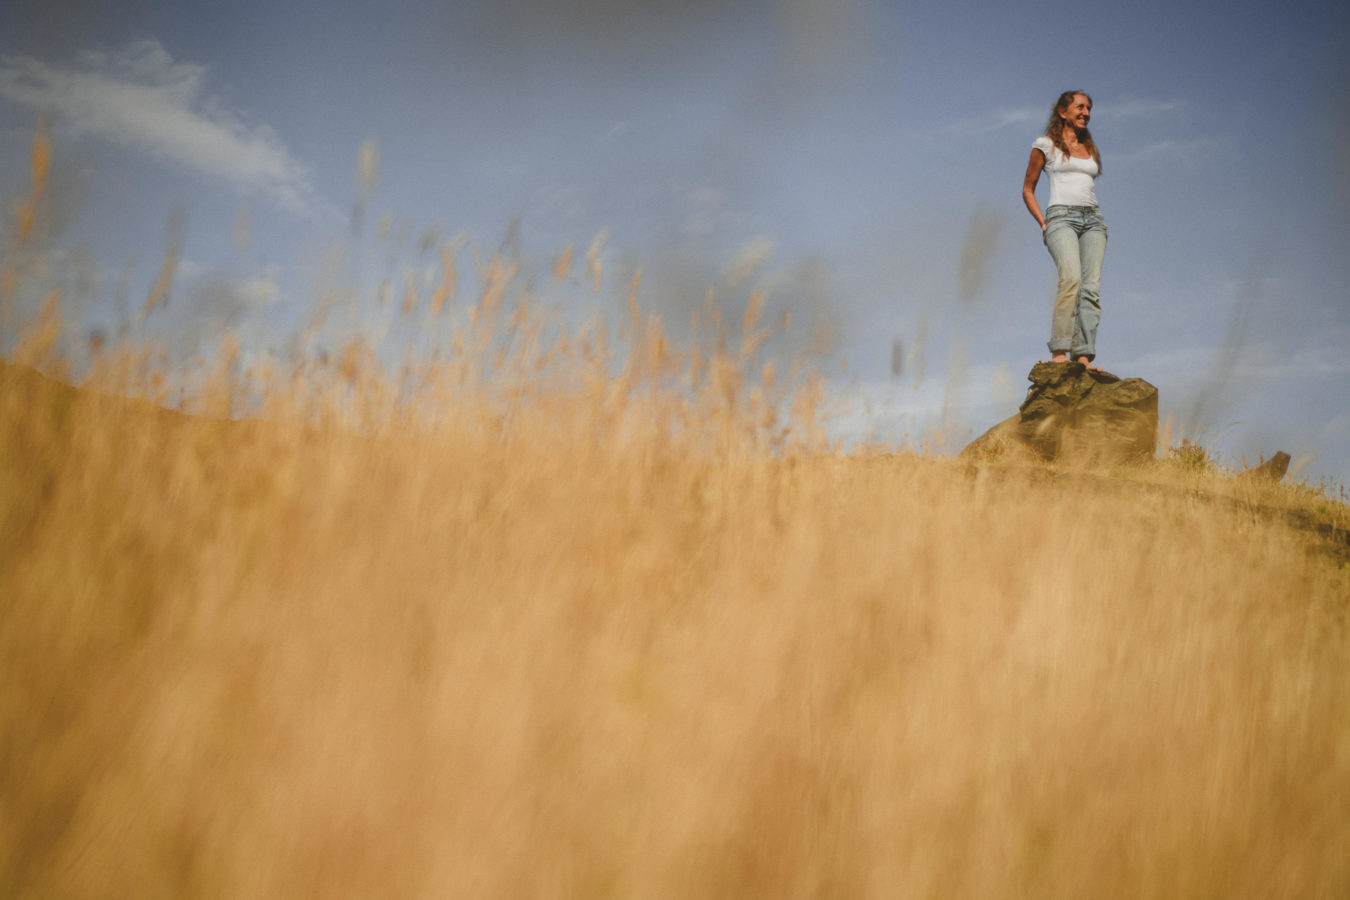 looking up at a woman standing on a large rock surrounded by tall yellow grass and blue sky